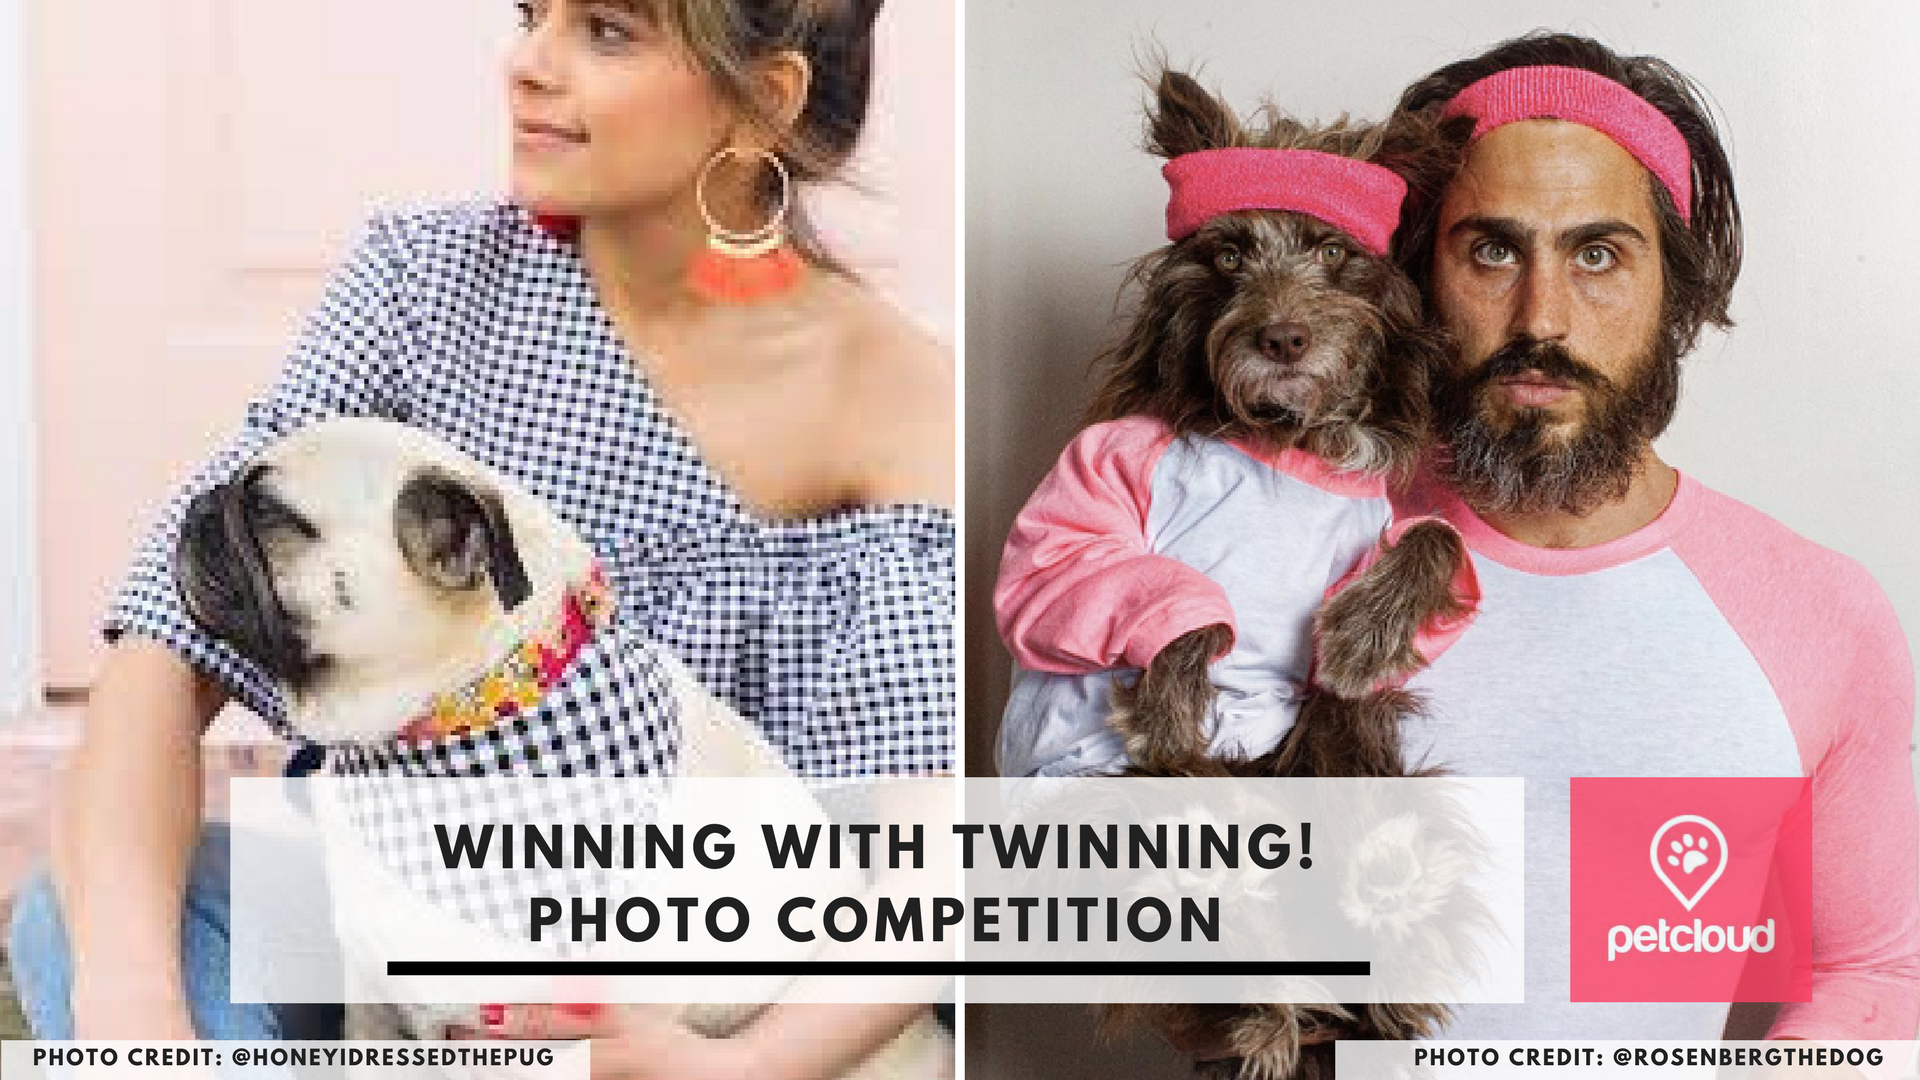 twinning, @rosenbergthedog, @honeyidressedthepug, photo competition, petcloud, win, prize, giveaway, dog photos, cat photos, Zoo Studio Photogrpahy blog article image